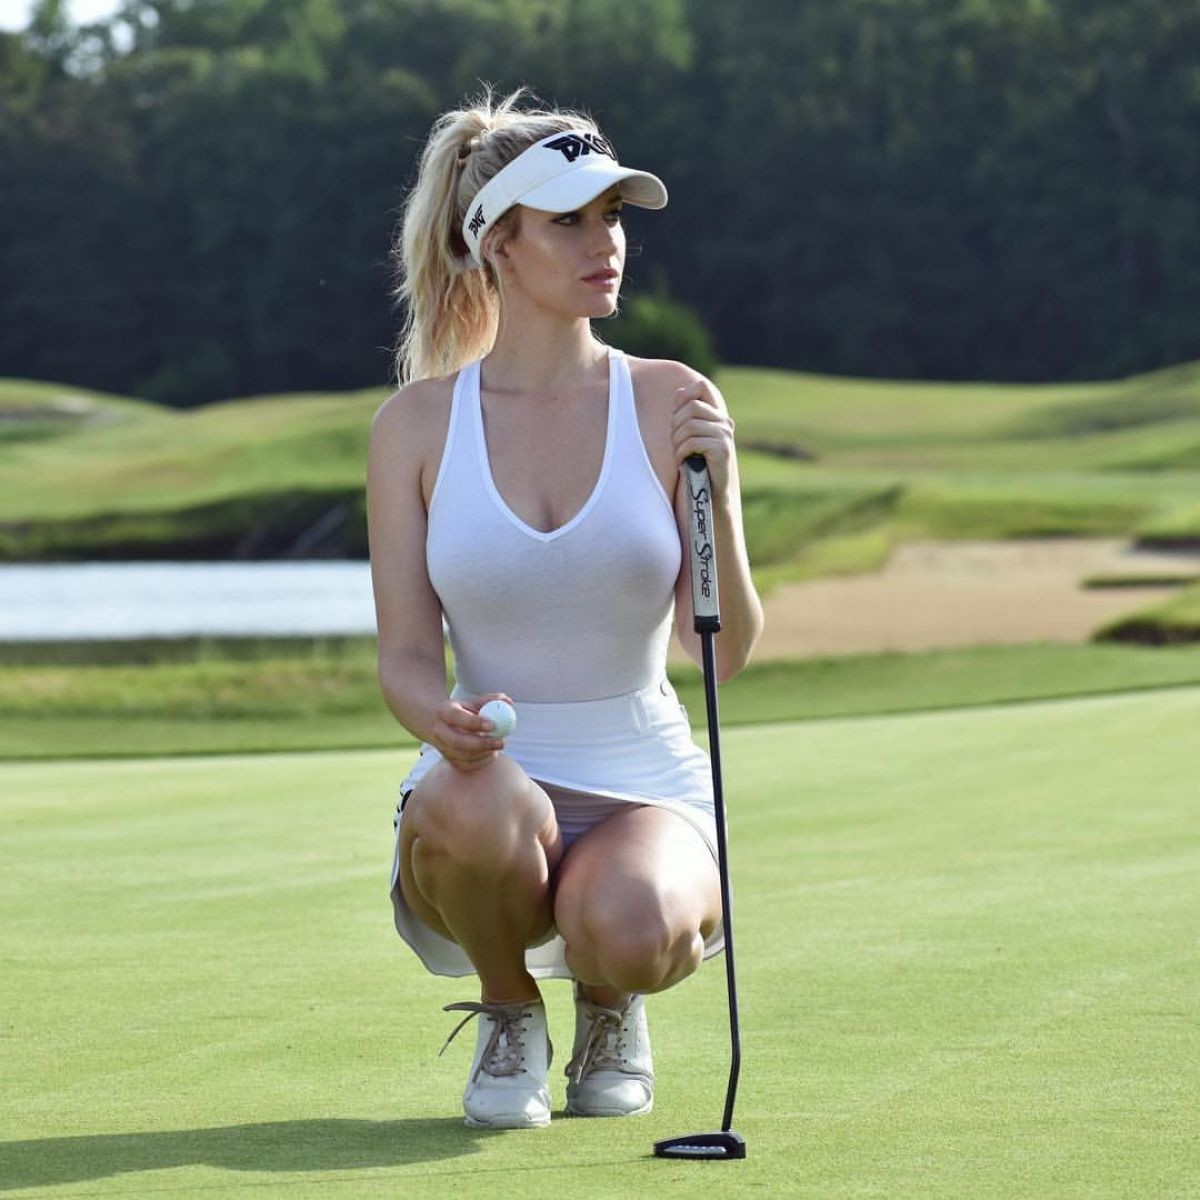 Paige Spiranac nude (43 foto and video), Pussy, Leaked, Selfie, swimsuit 2015